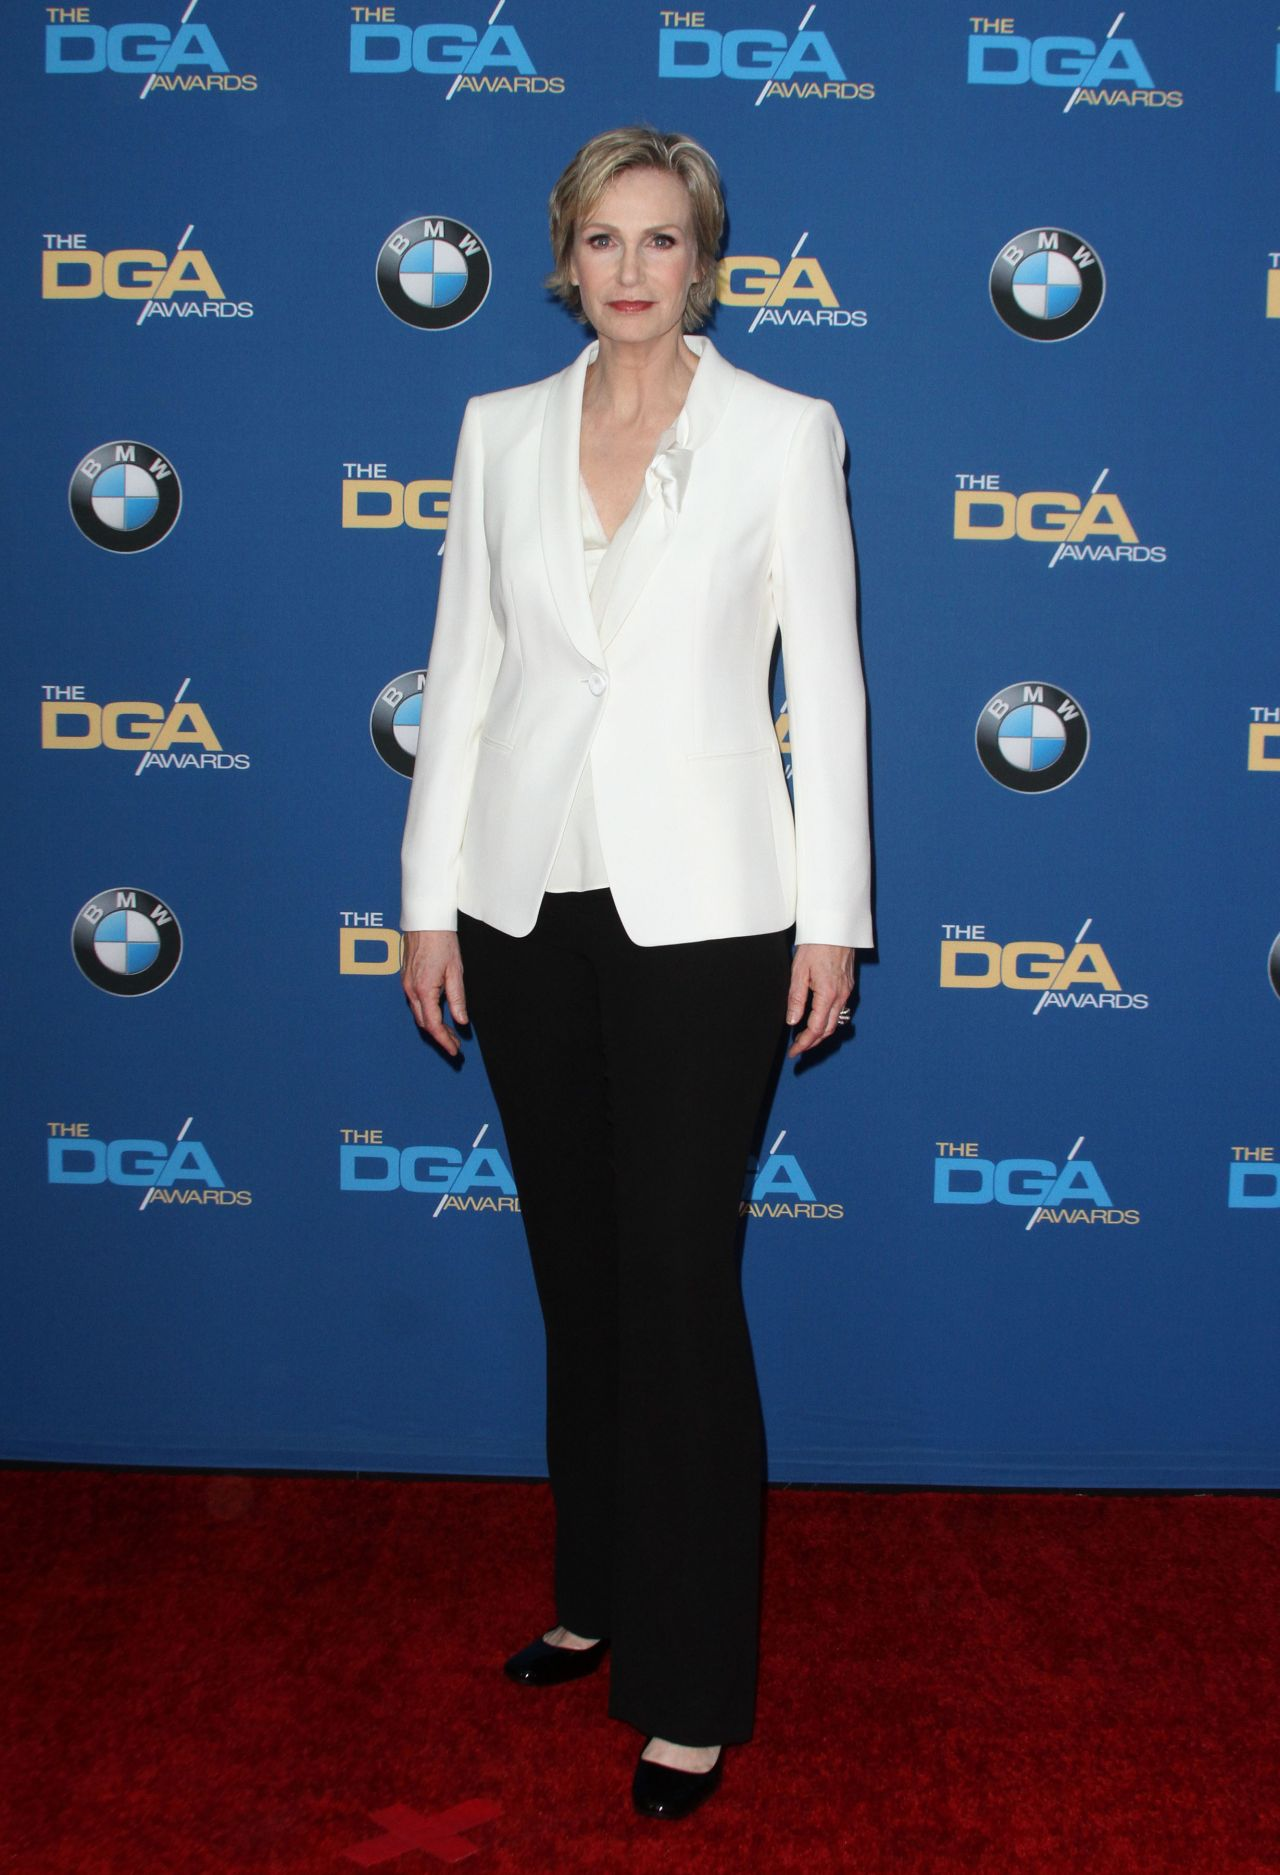 jane-lynch-directors-guild-of-america-awards-2016-in-los-angeles-1